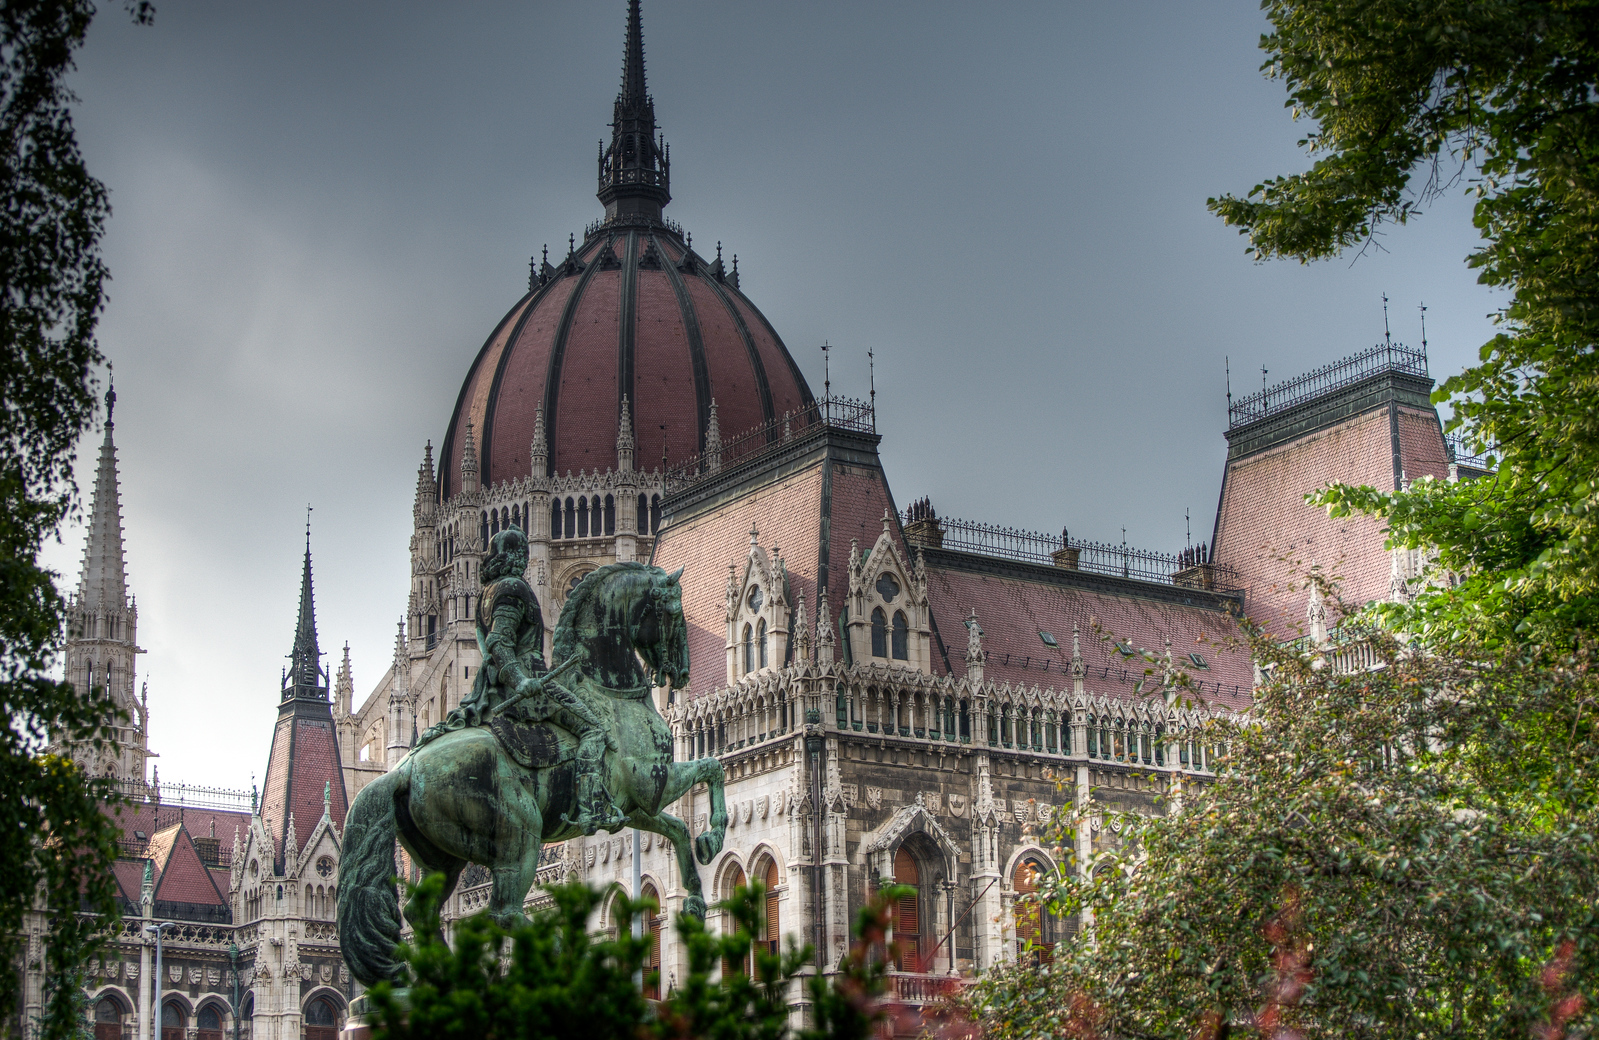 Budapest, including the Banks of the Danube, the Buda Castle Quarter and Andrássy Avenue World Heritage Site, Hungary